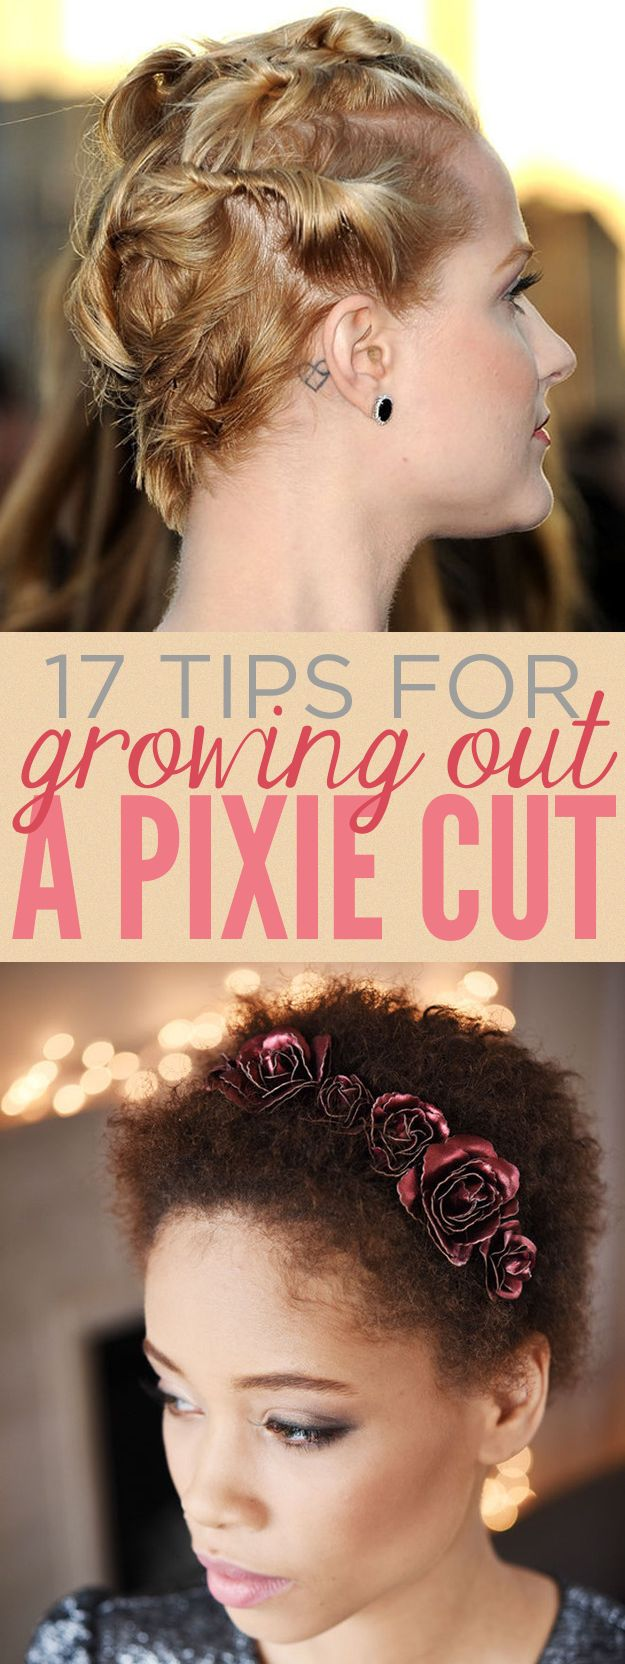 tips to style short hair 25 best ideas about pixie cut headband on 6400 | 9c19835c8b0e9569553ea08bba41d5a0